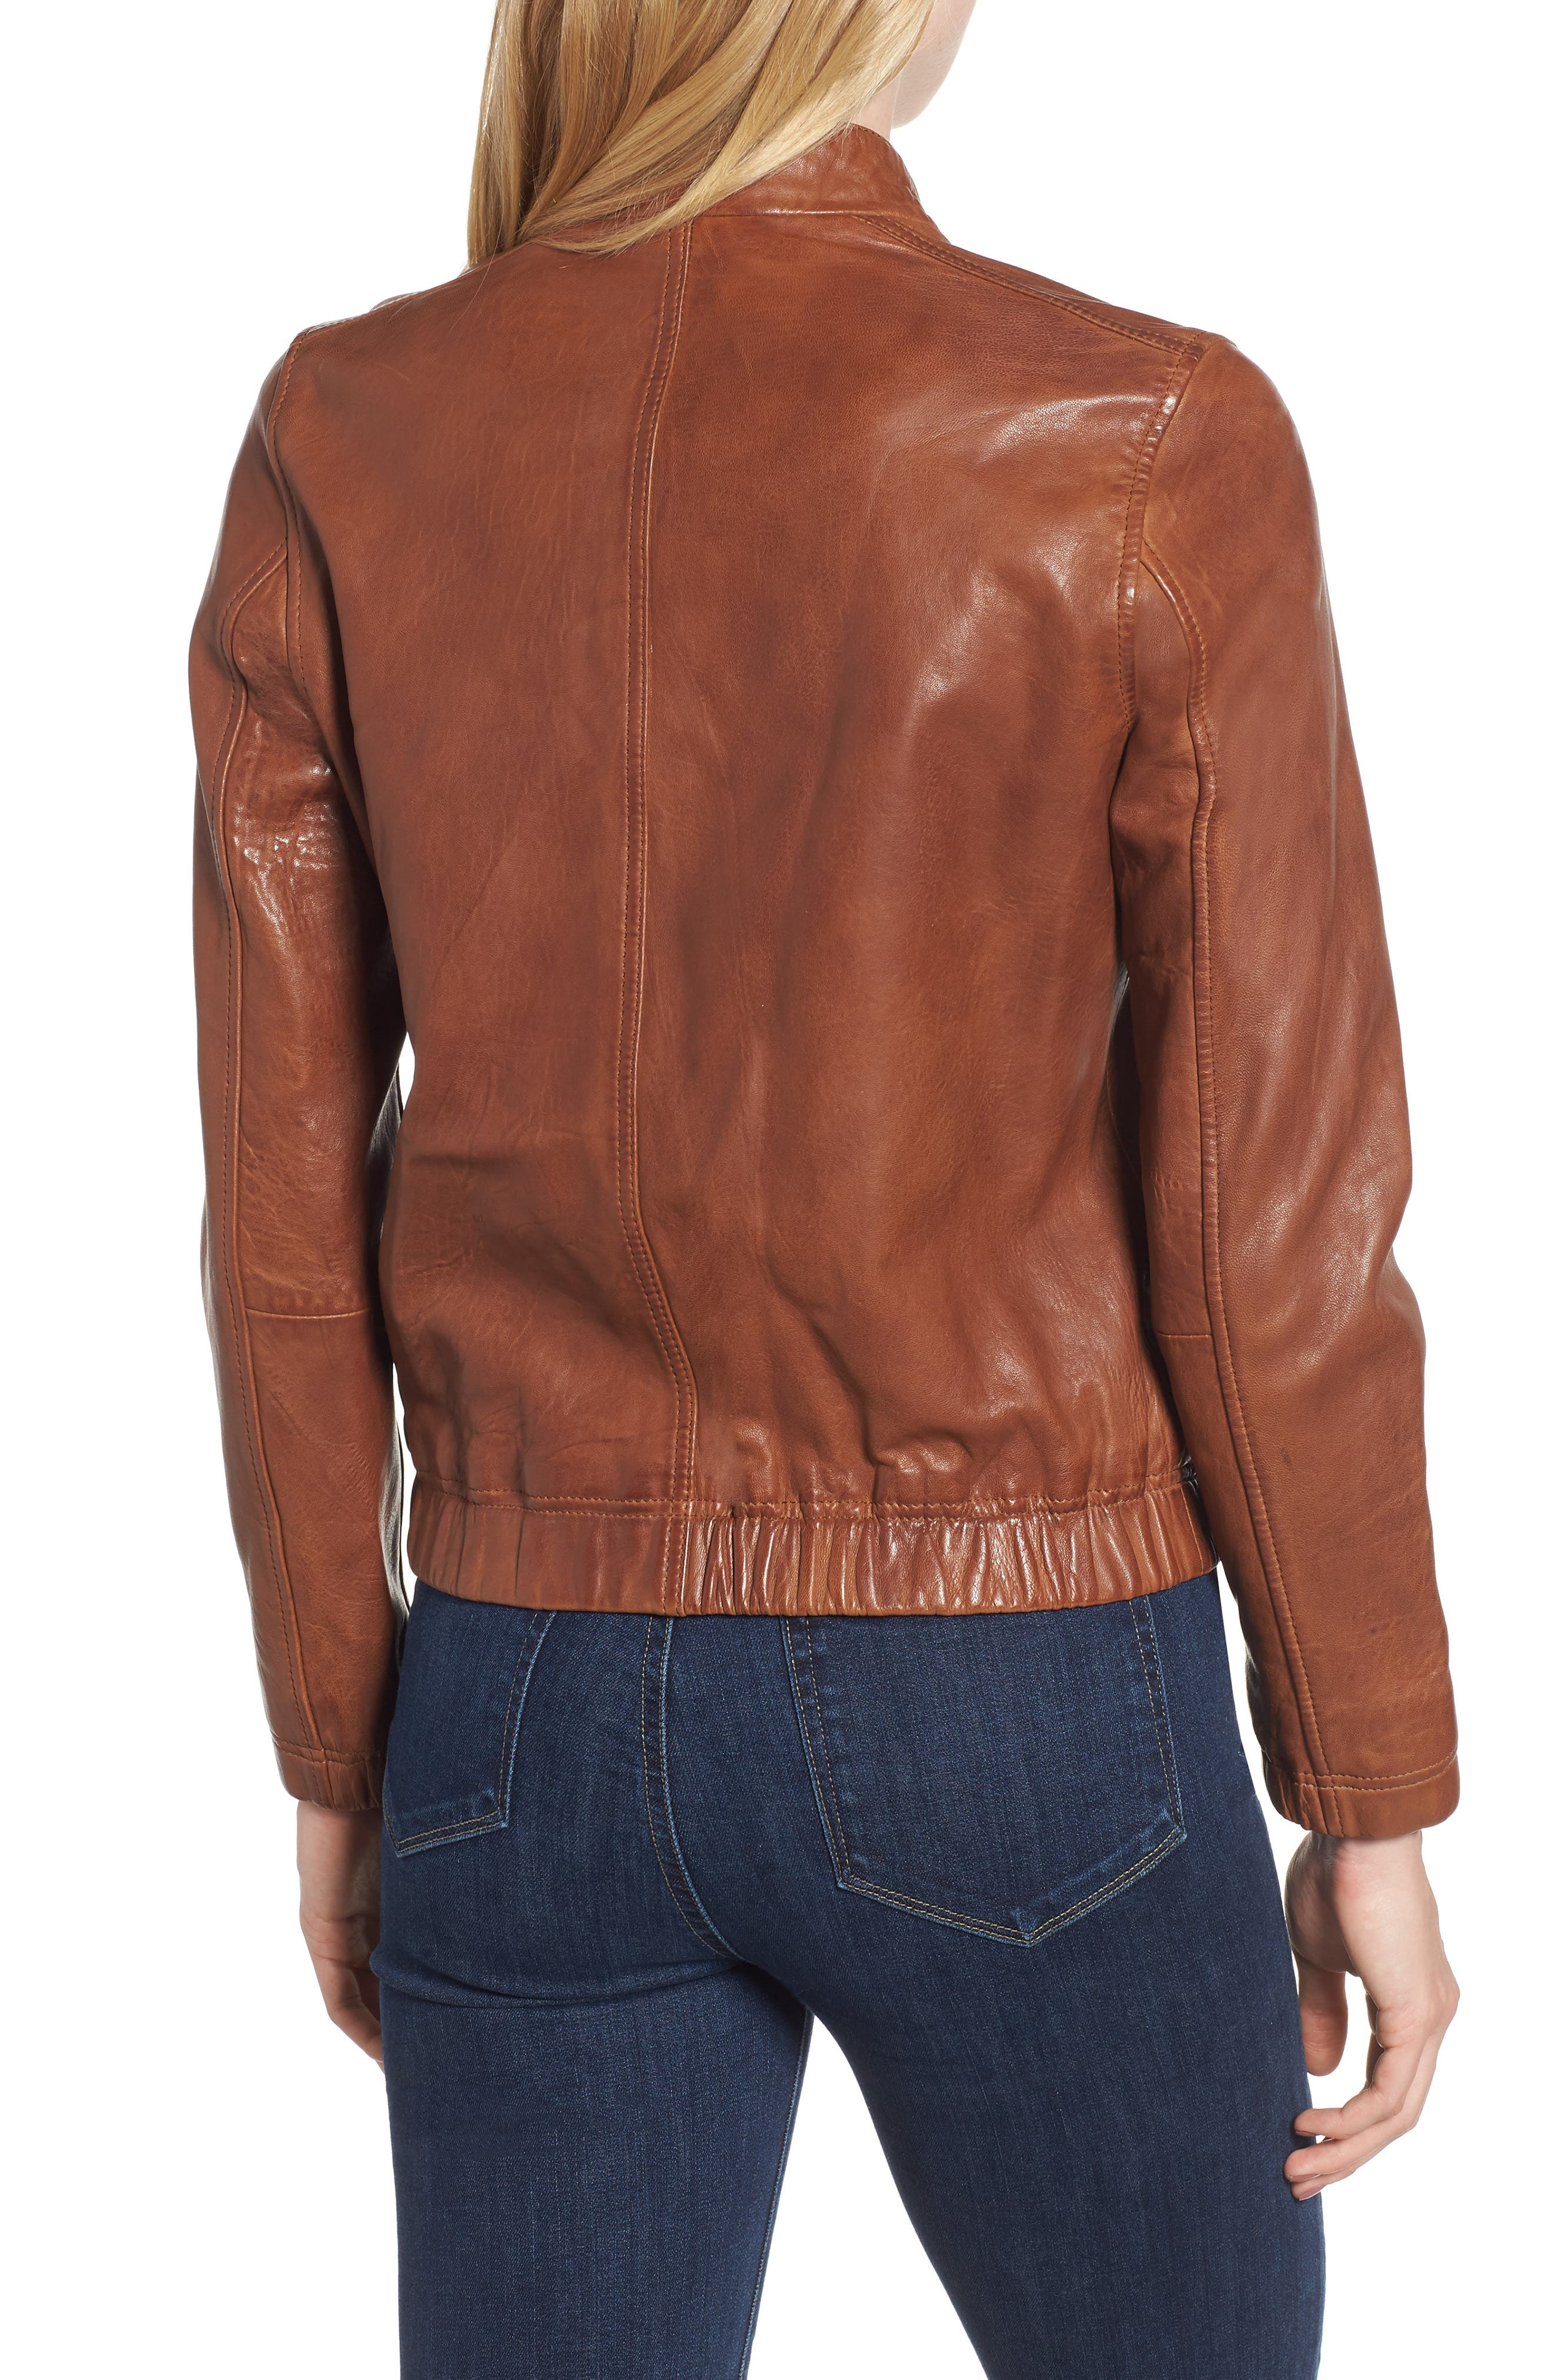 LUCKY BRAND,                             Ana Leather Jacket,                             Alternate thumbnail 2, color,                             210